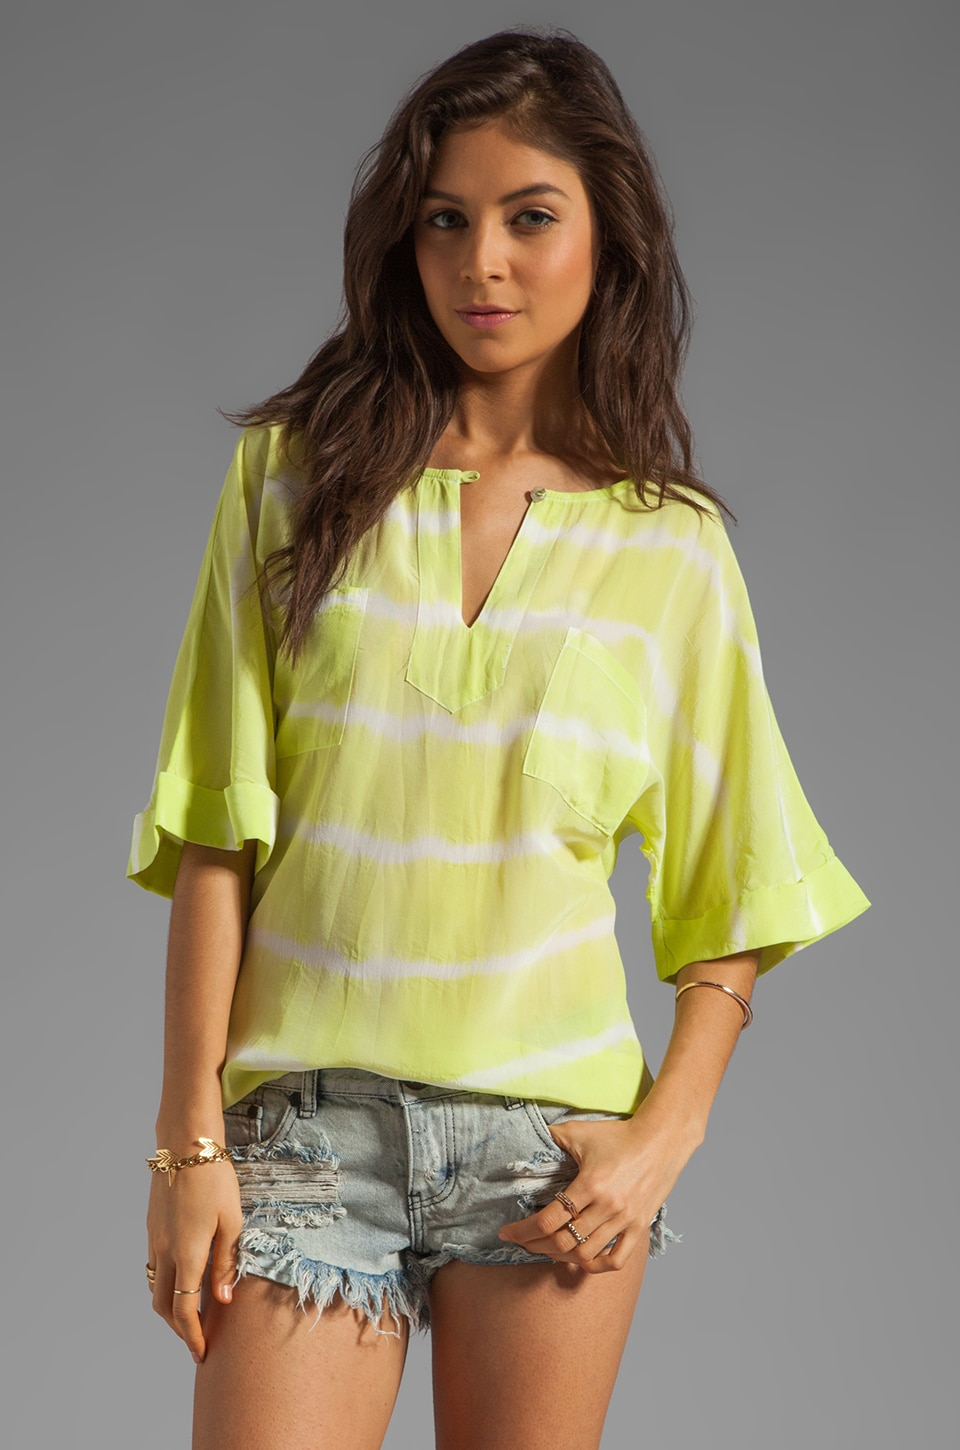 Gypsy 05 Sarah Double Pocket S/S Top in Lime